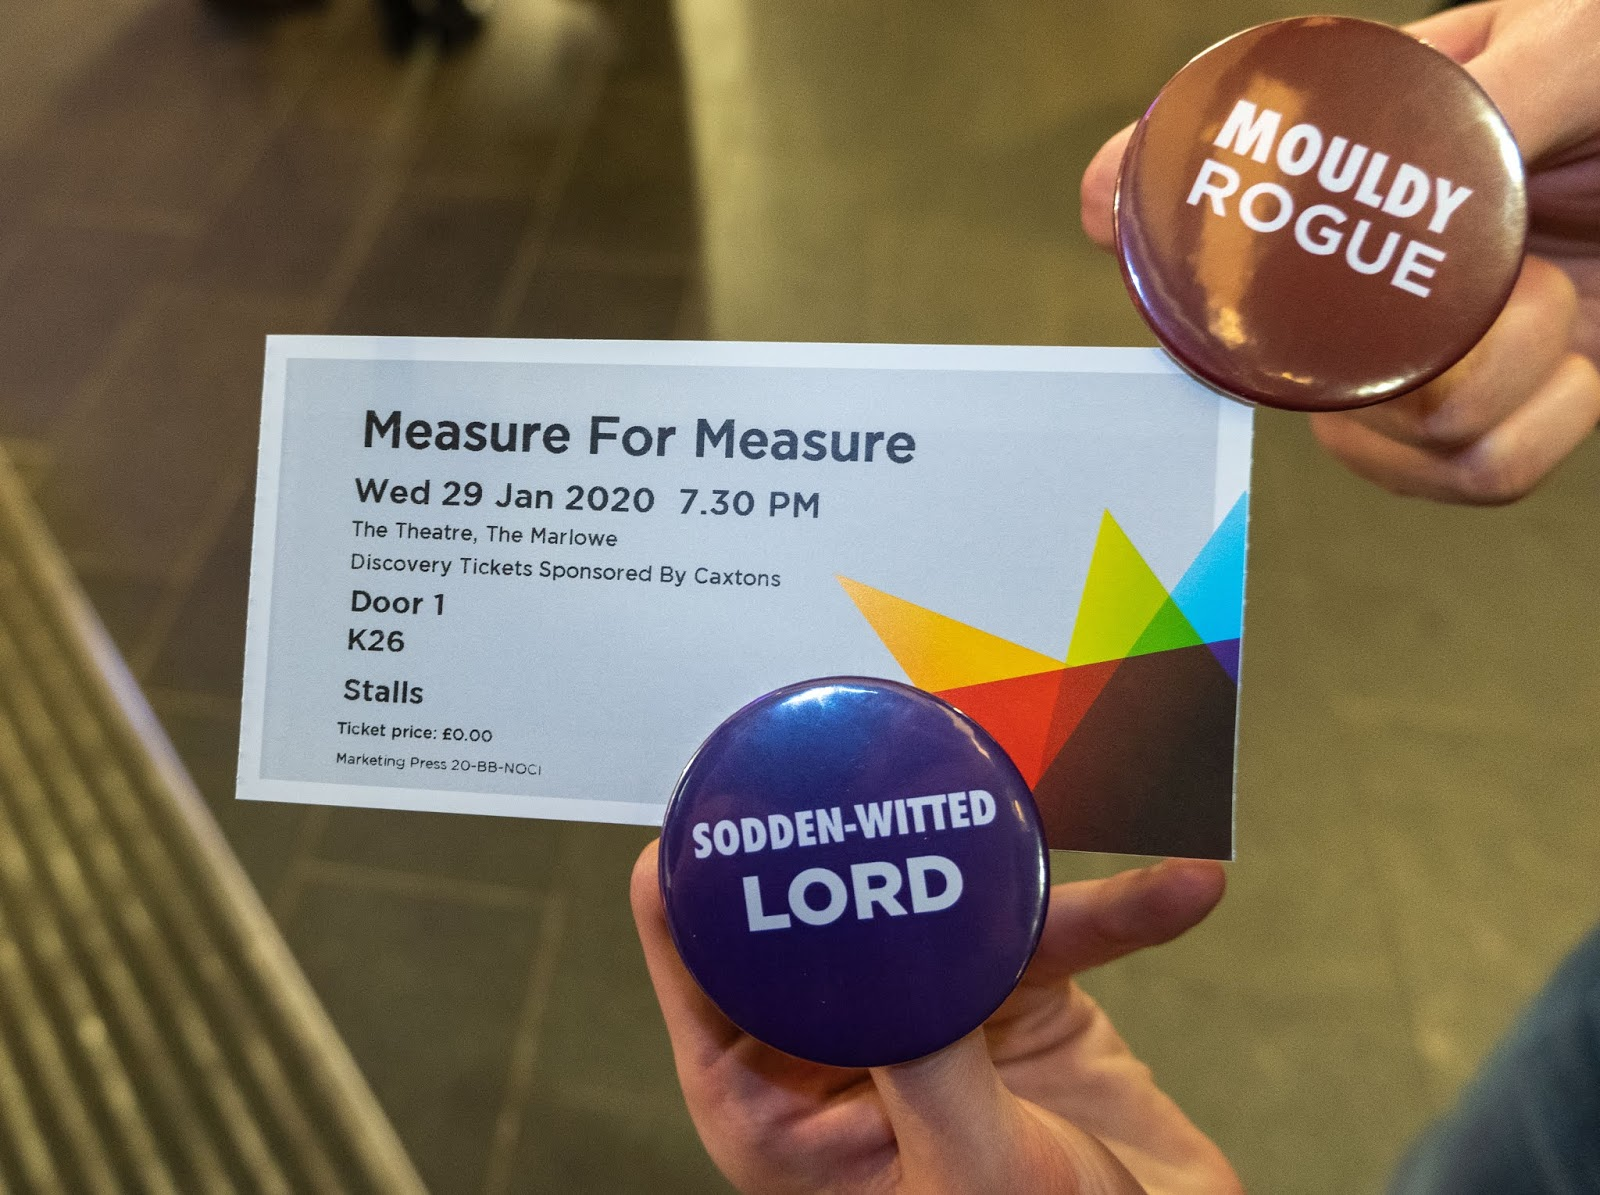 Our Measure For Measure tickets and complimentary Shakespearian insult badges